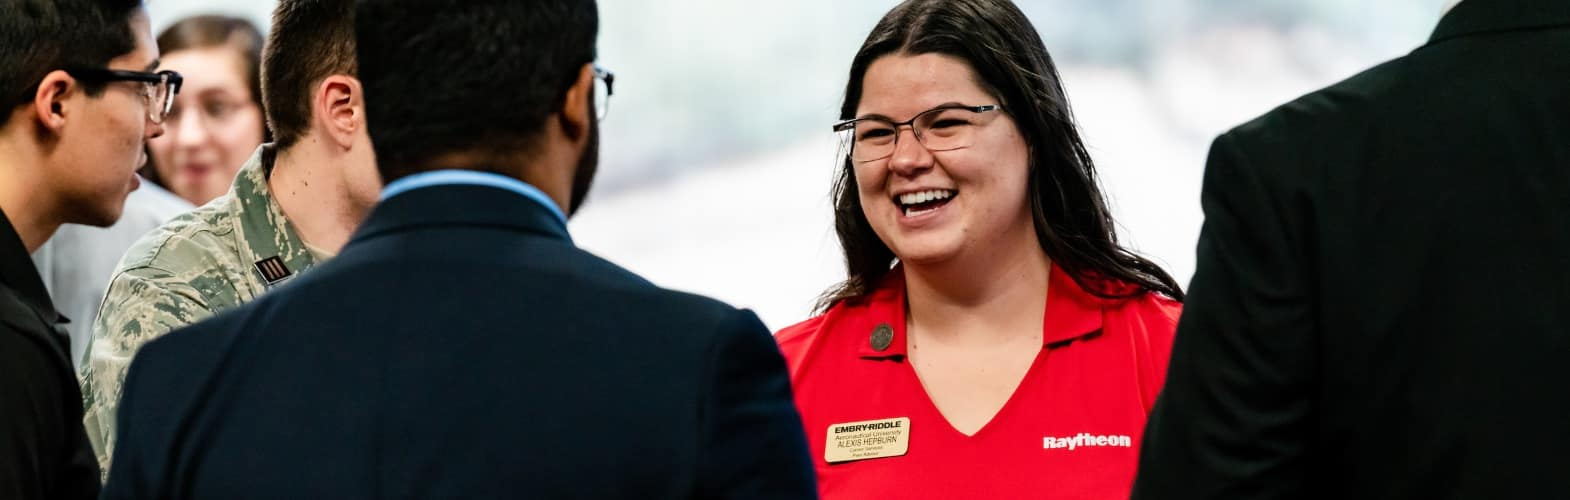 Student Success: Alexis and Raytheon